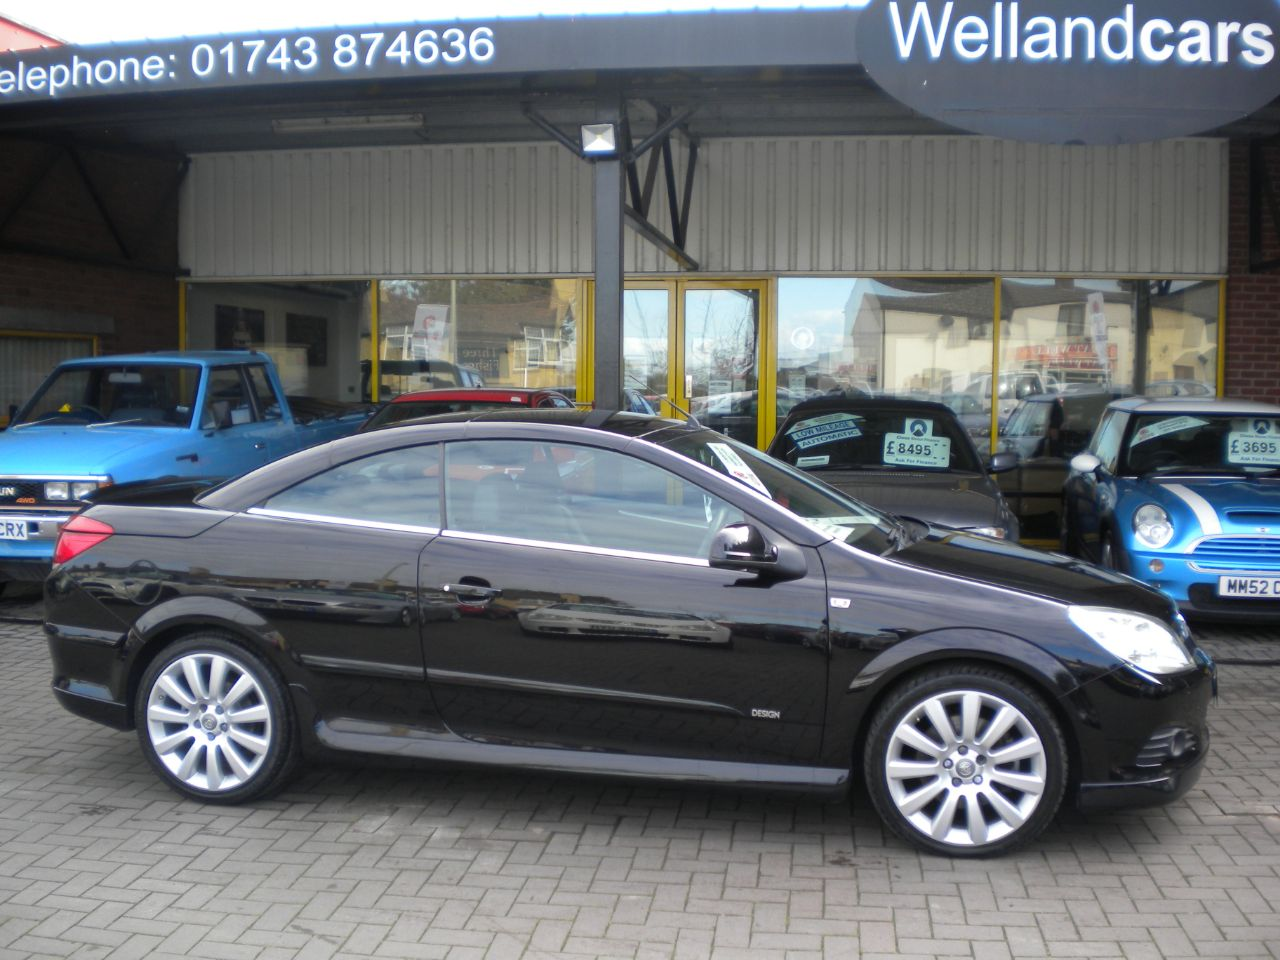 Vauxhall Astra 1.9 CDTi 16V Design 2dr, Manual Diesel,F/S/H,Leather,15 MONTH PARTS AND LABOUR WARRANTY INCLUDED Convertible Diesel Metallic Sapphire Black at Welland Cars Shrewsbury